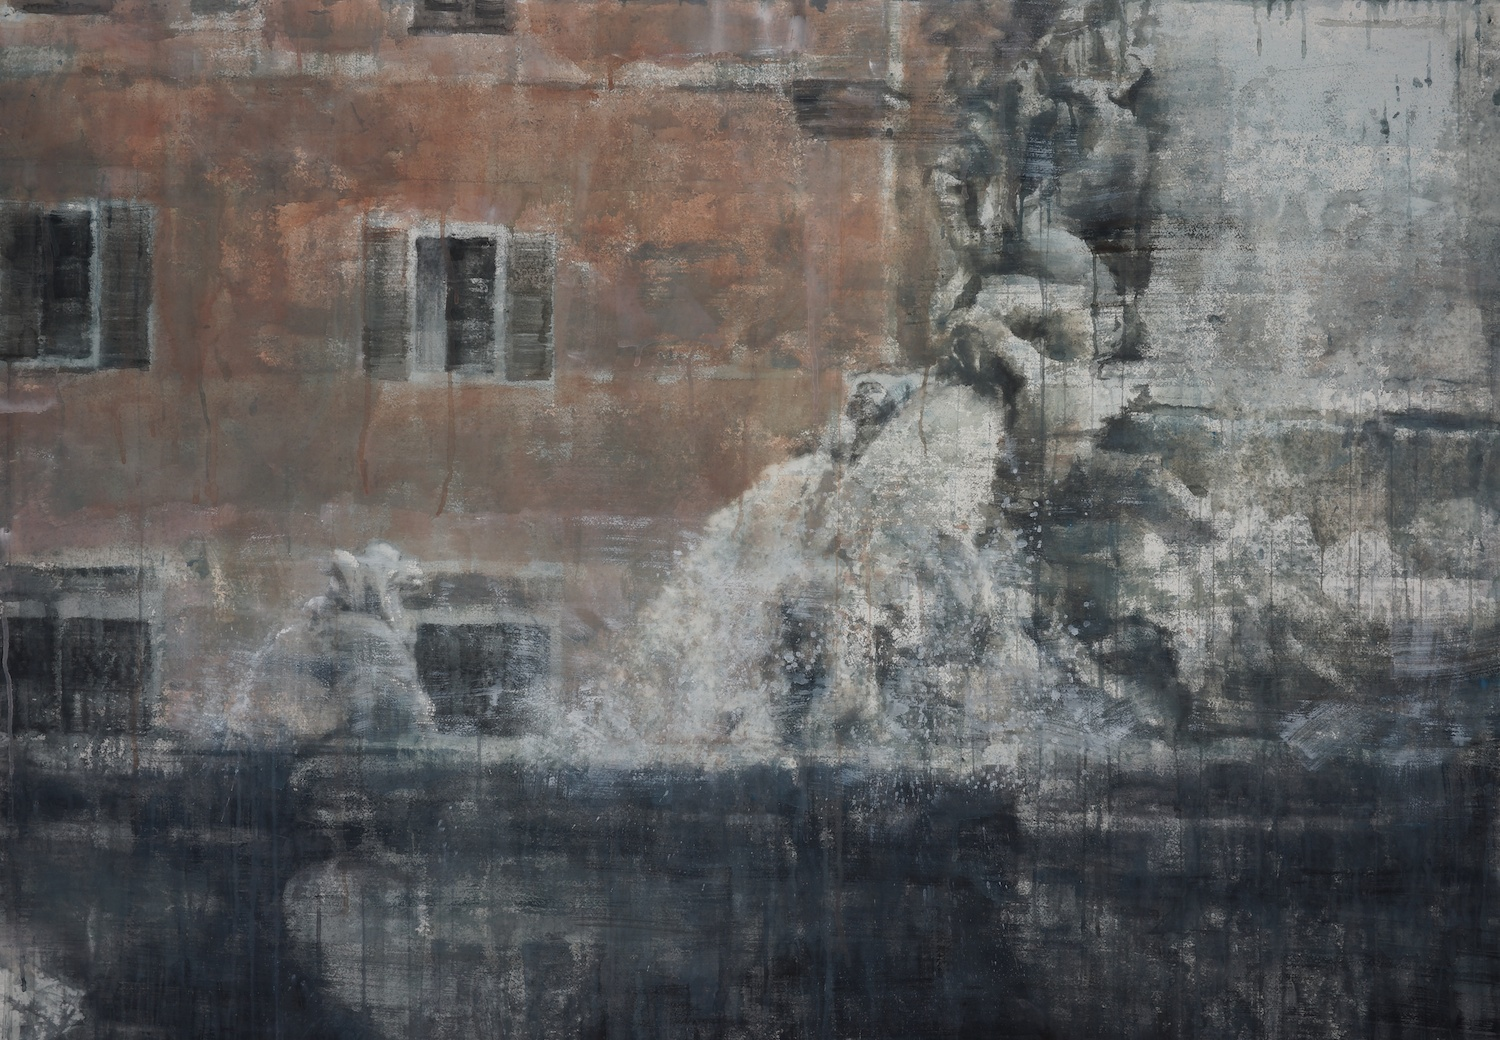 Fountain of Rome II, 45x64 inches